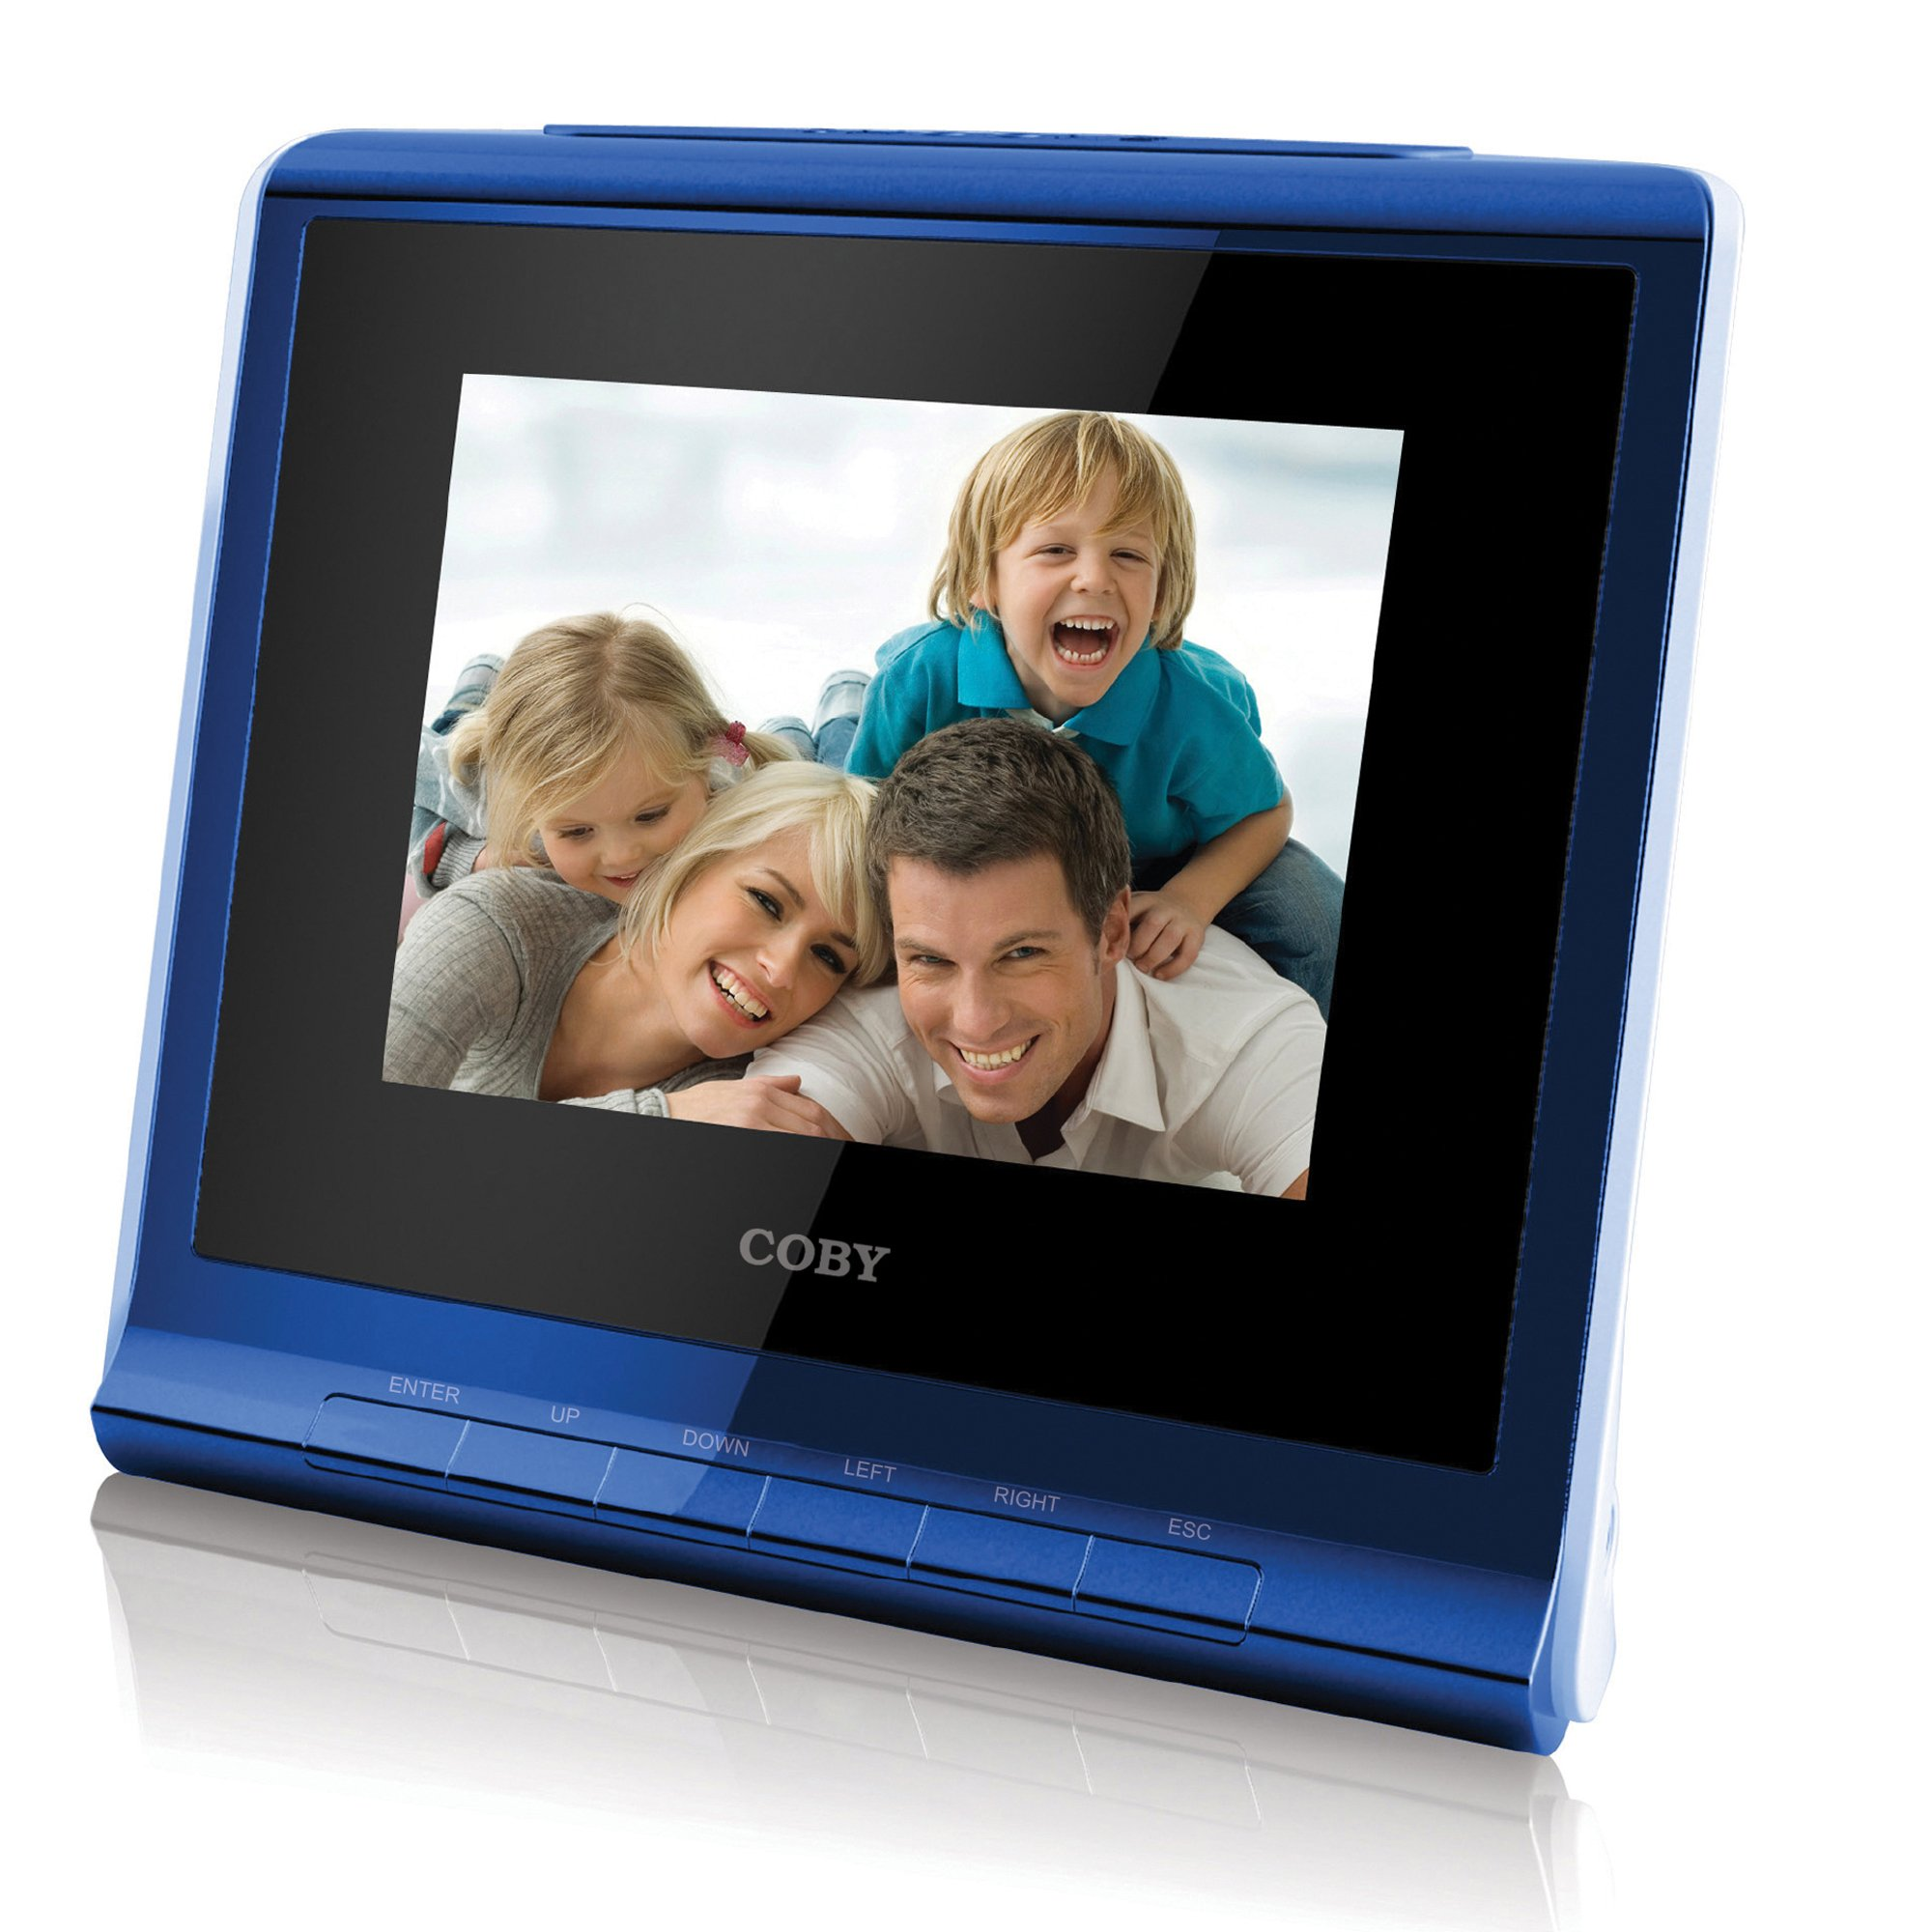 Coby DP356BLU 3.5-Inch Digital Photo Frame with Alarm Clock, Blue by Coby